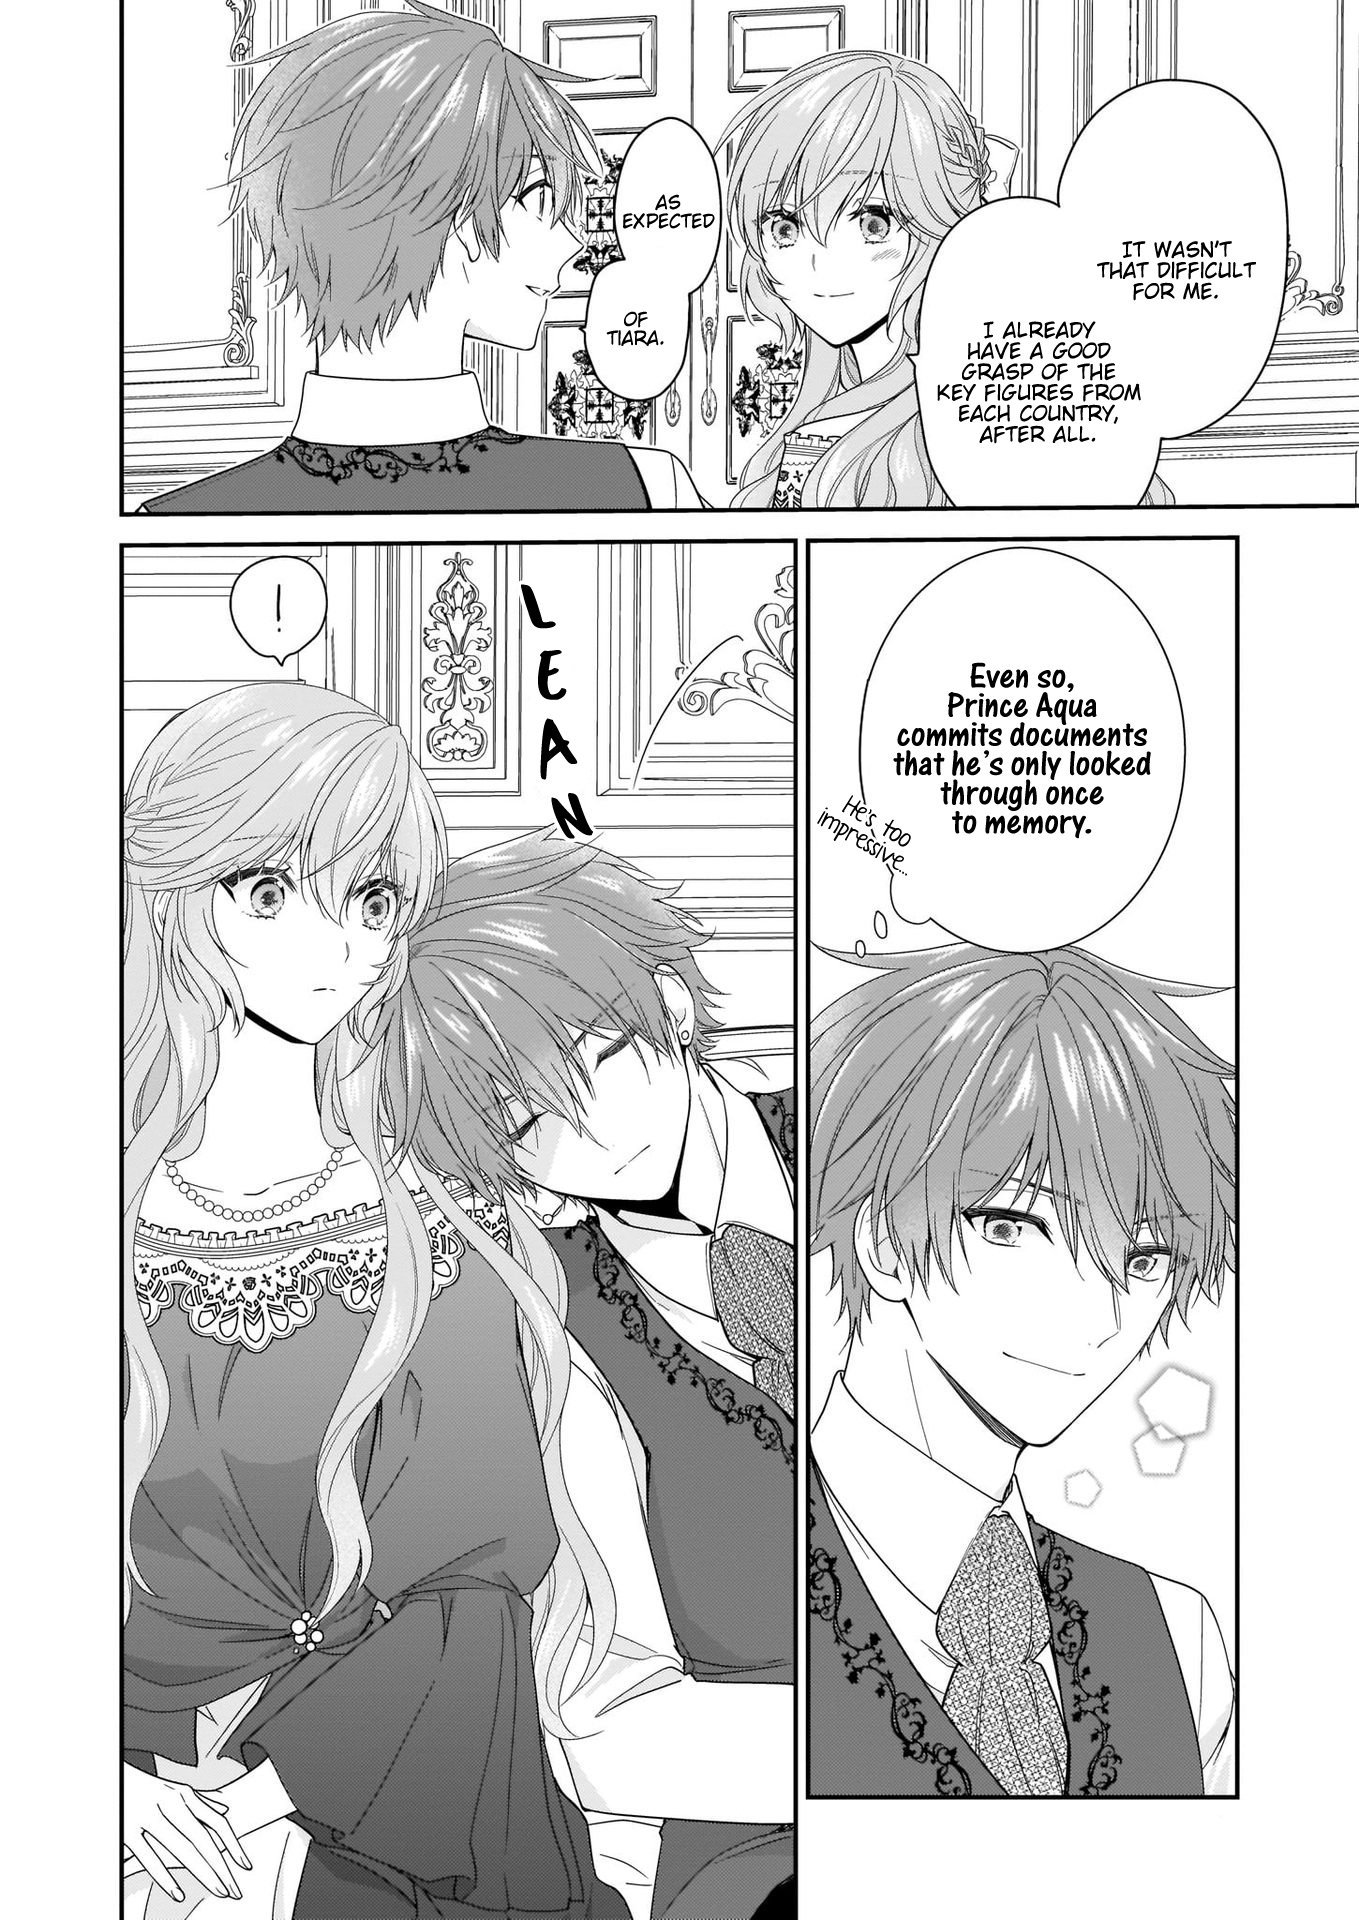 Manga The Villainess Is Adored by the Crown Prince of the Neighboring Kingdom - Chapter 23 Page 7